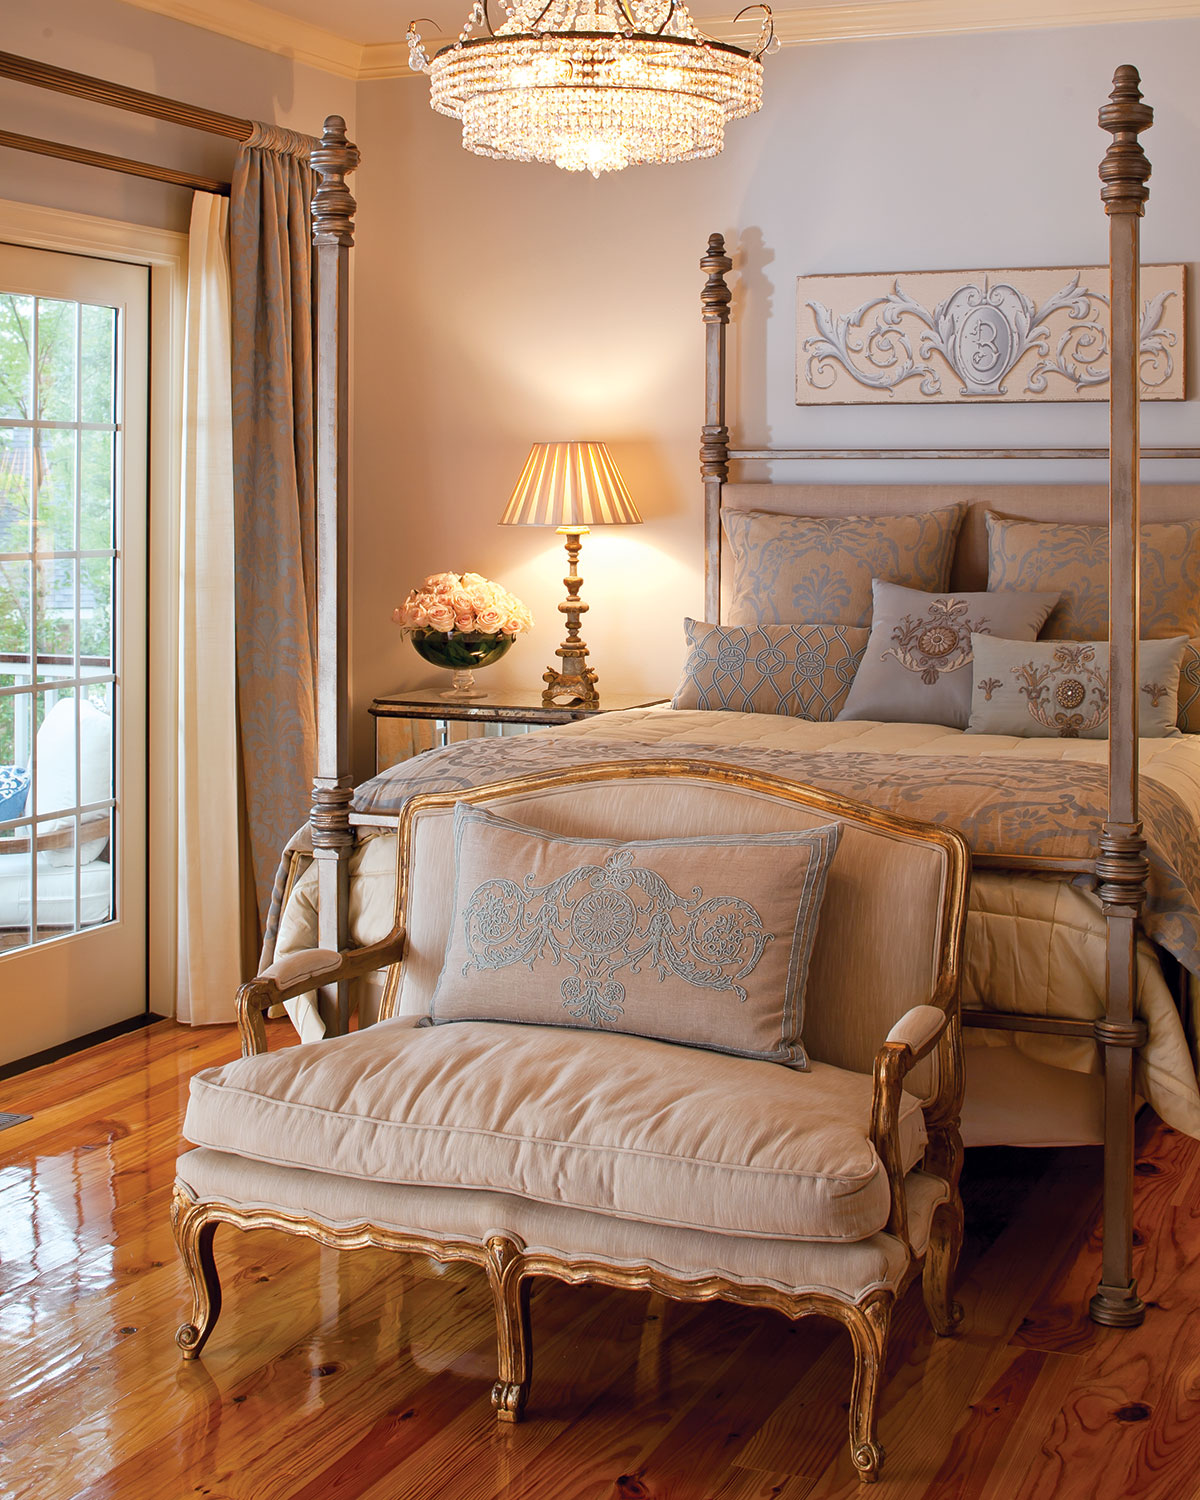 10 Cozy And Dreamy Bedroom With Galaxy Themes: 10 Dreamy Southern Bedrooms